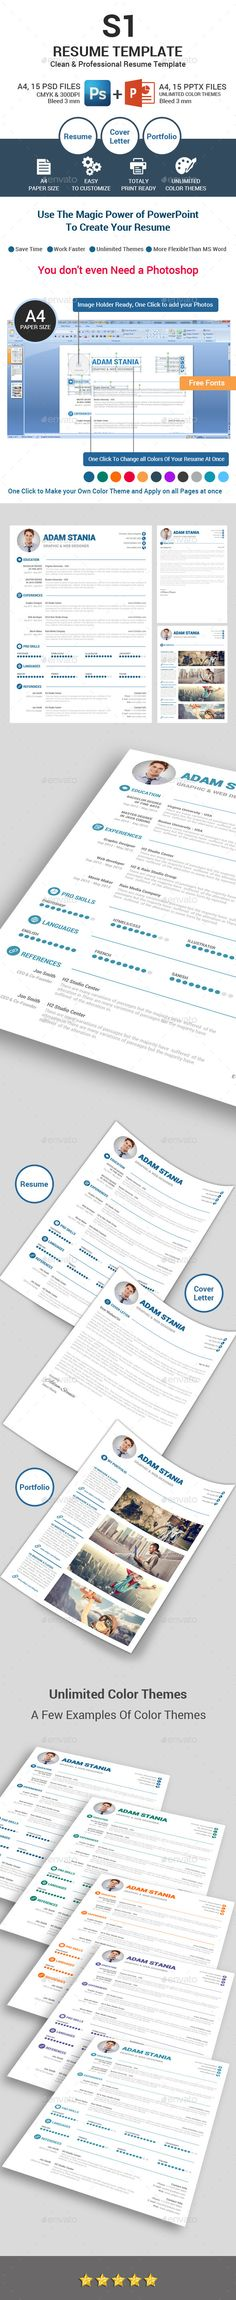 buy clean resume template make positive impression simple where to templates professional best sales sample